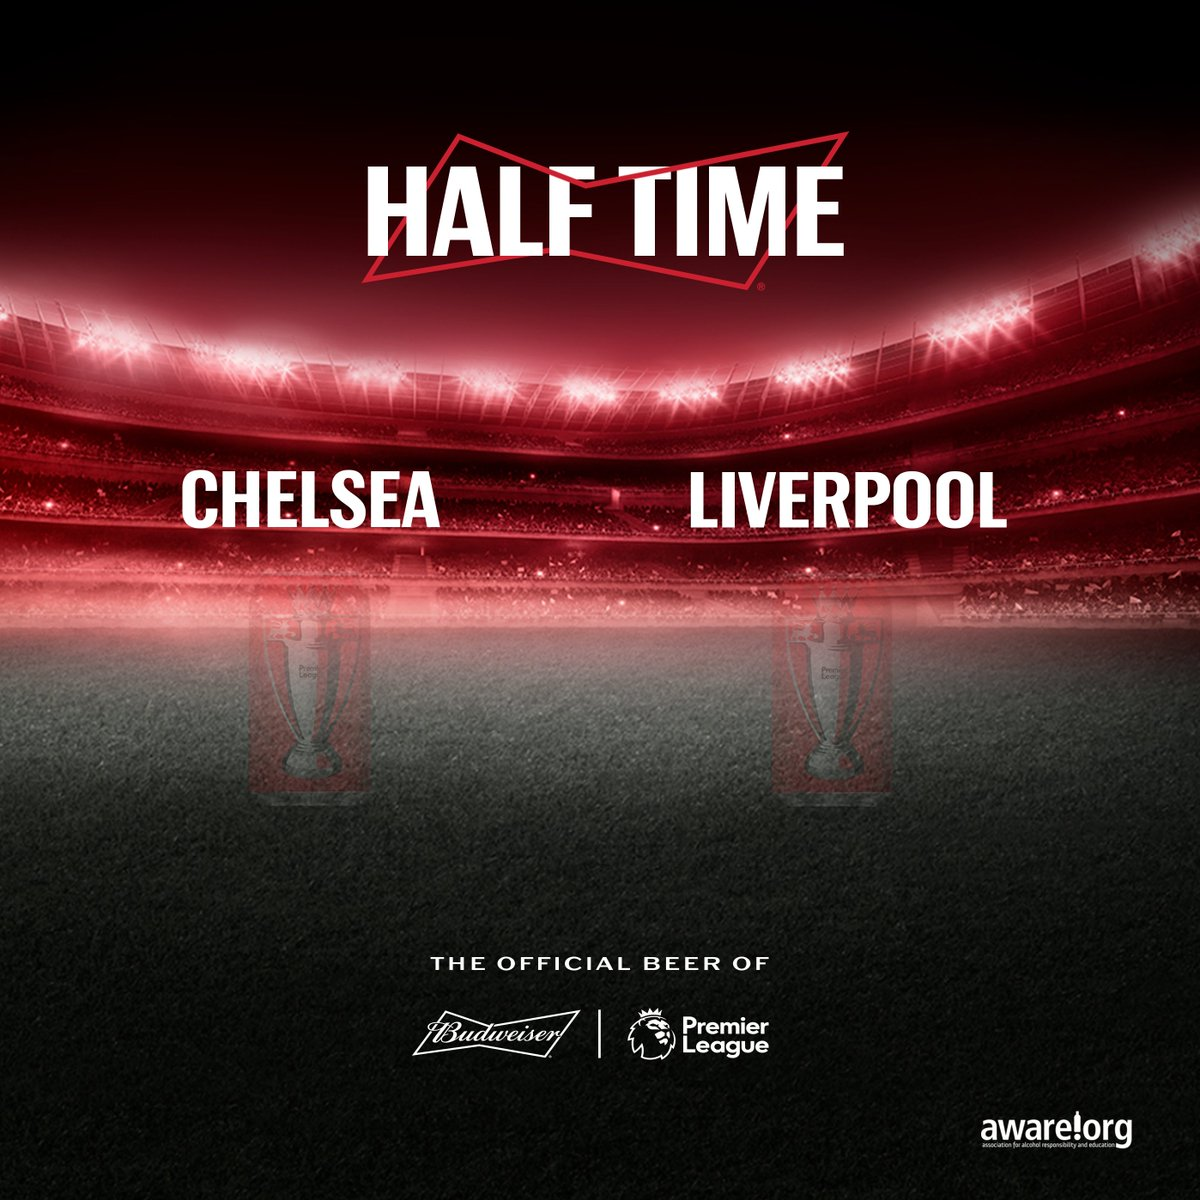 No goals at Half Time, but Liverpool have the man advantage, what time will we see the first goal in this match? Reply with your prediction. #SmoothForNaijaKings #BeAKing #CHELIV https://t.co/n6SwluFUGH